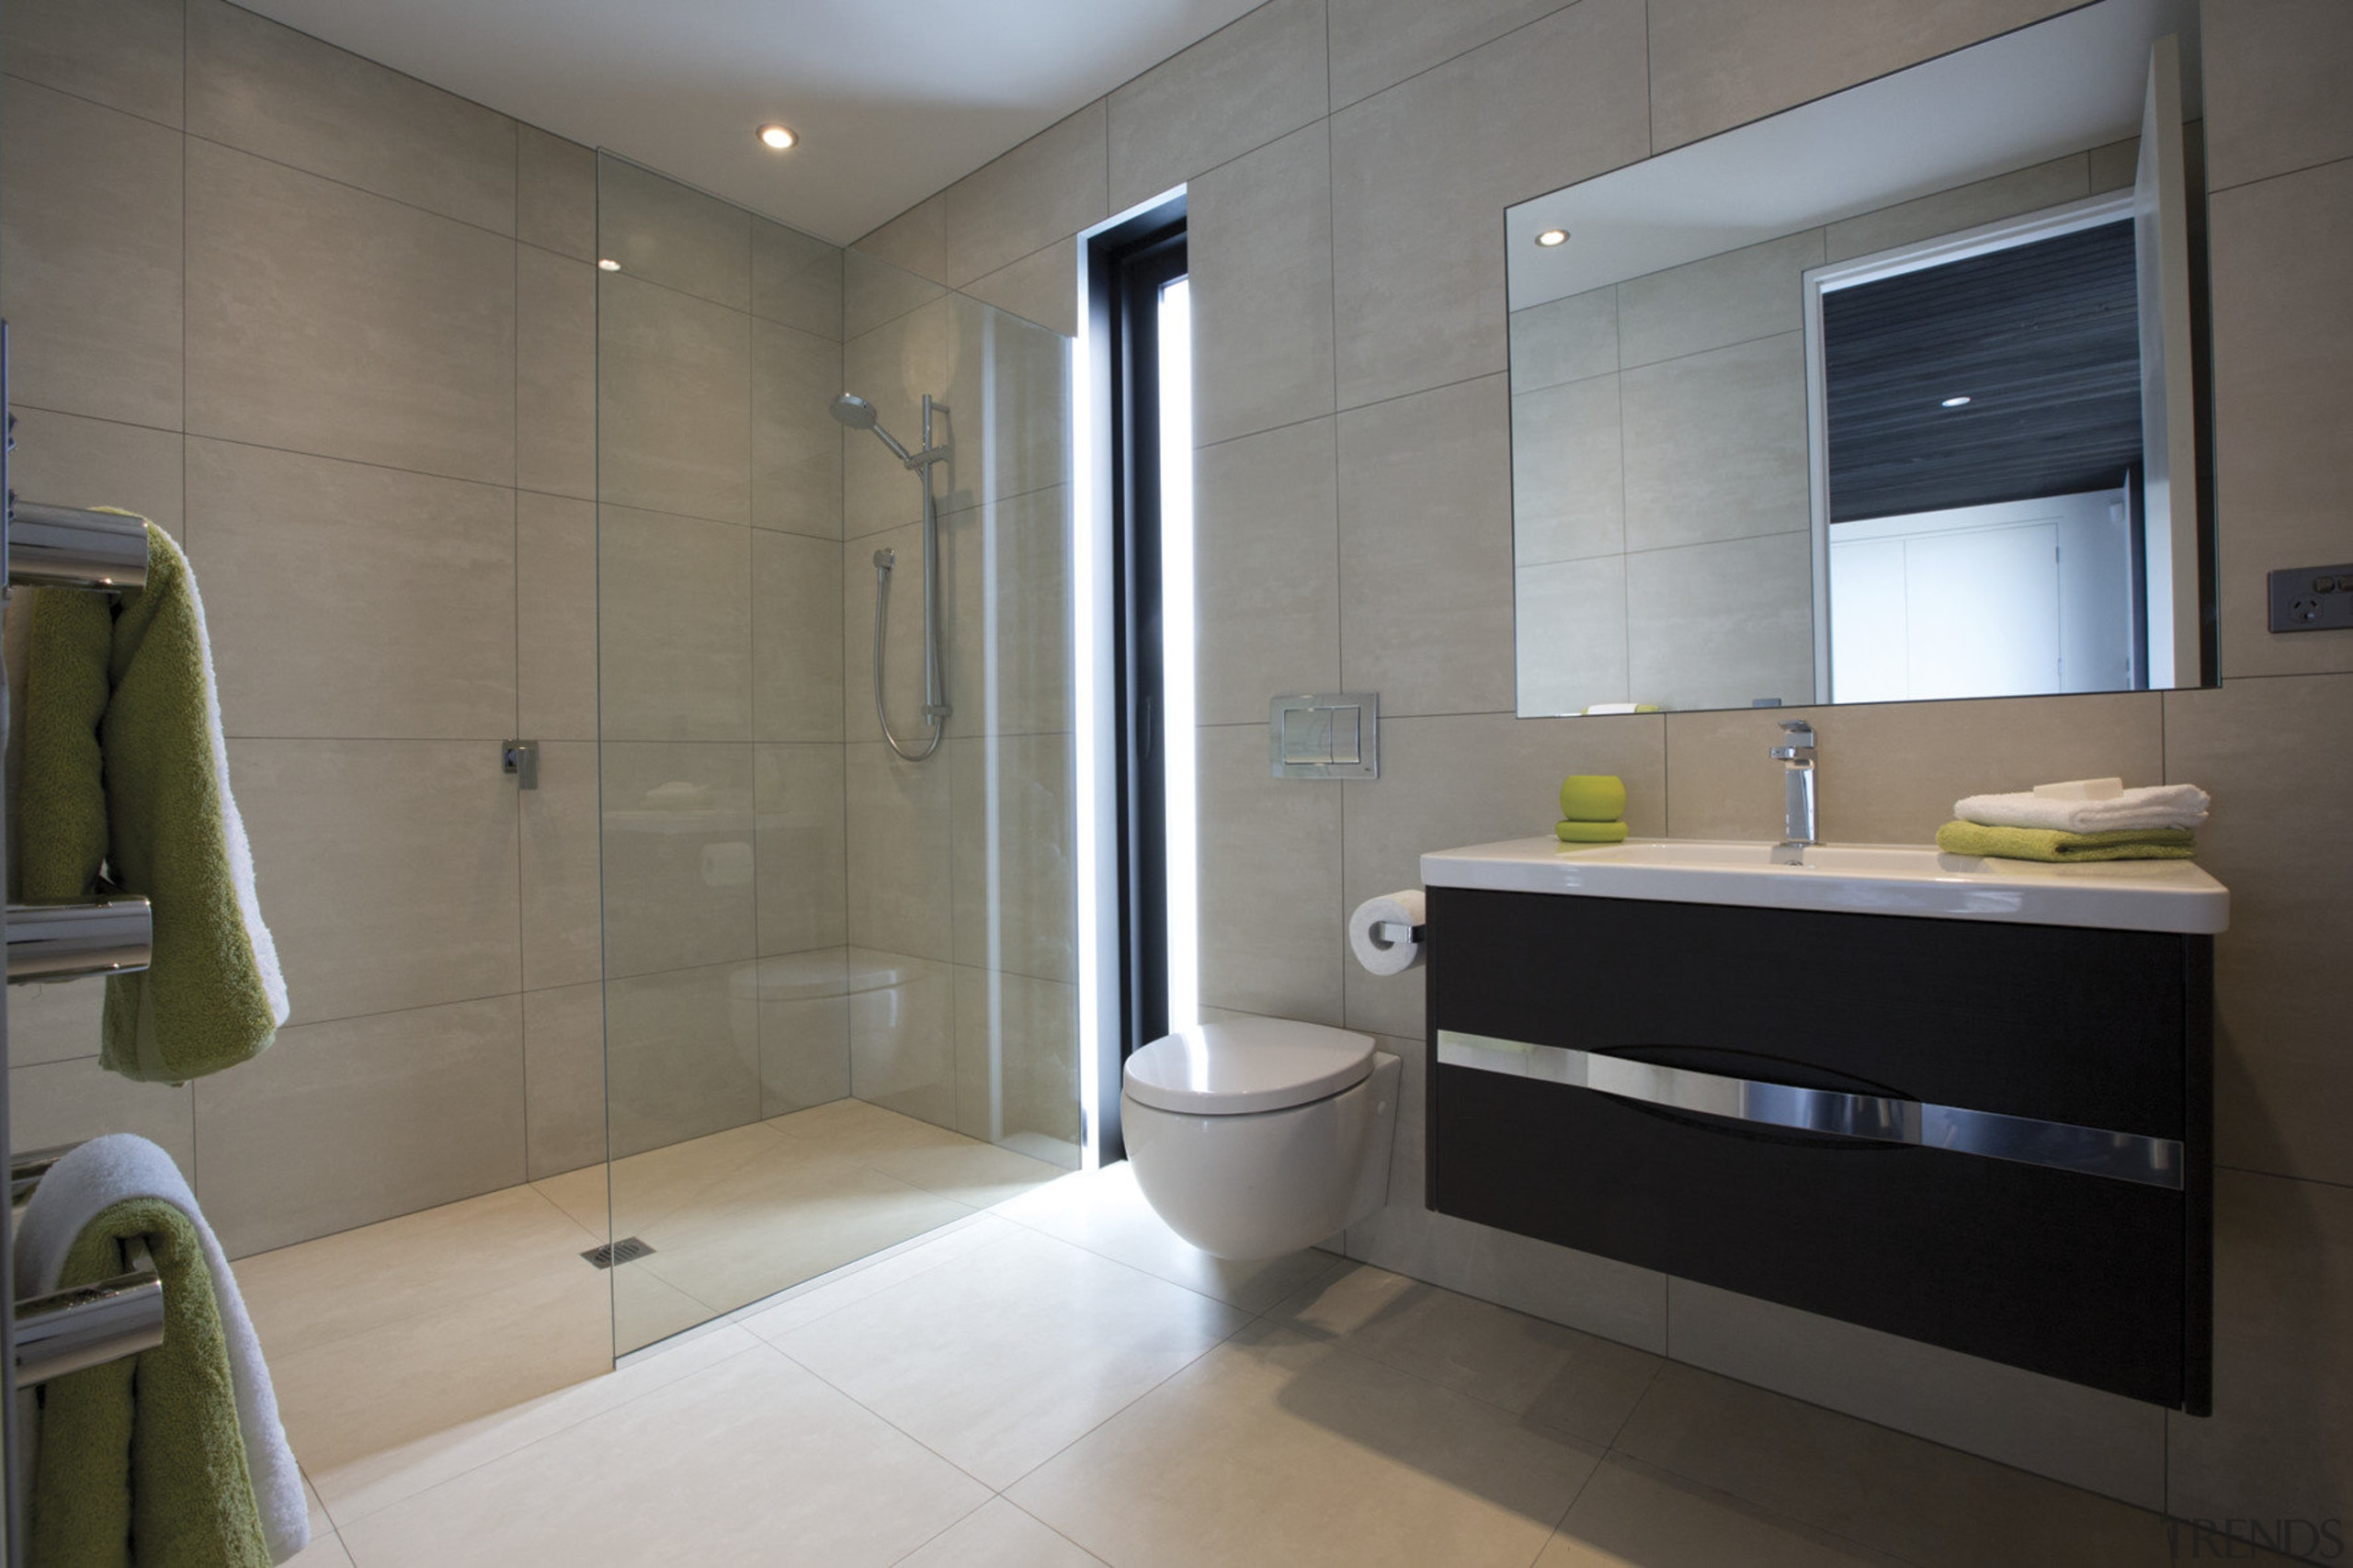 bathroom at The Life at Home street of bathroom, home, interior design, property, real estate, room, gray